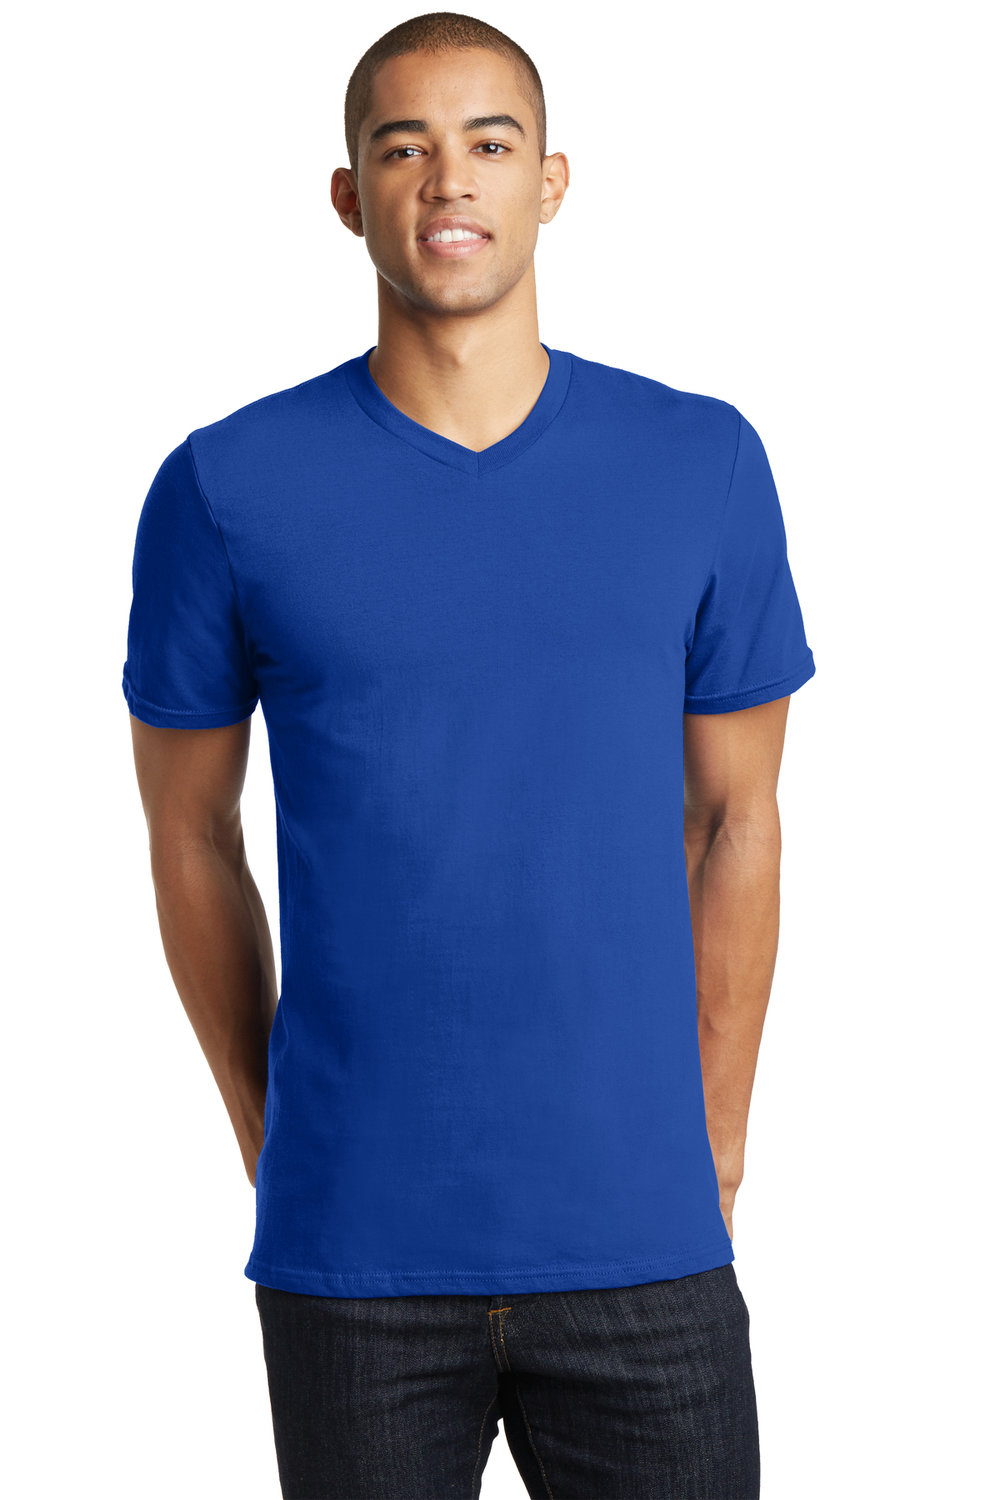 Men's V-Neck Shirt - Royal Blue (shown), Black, Charcoal, Heather Gray, White, Pink | $10